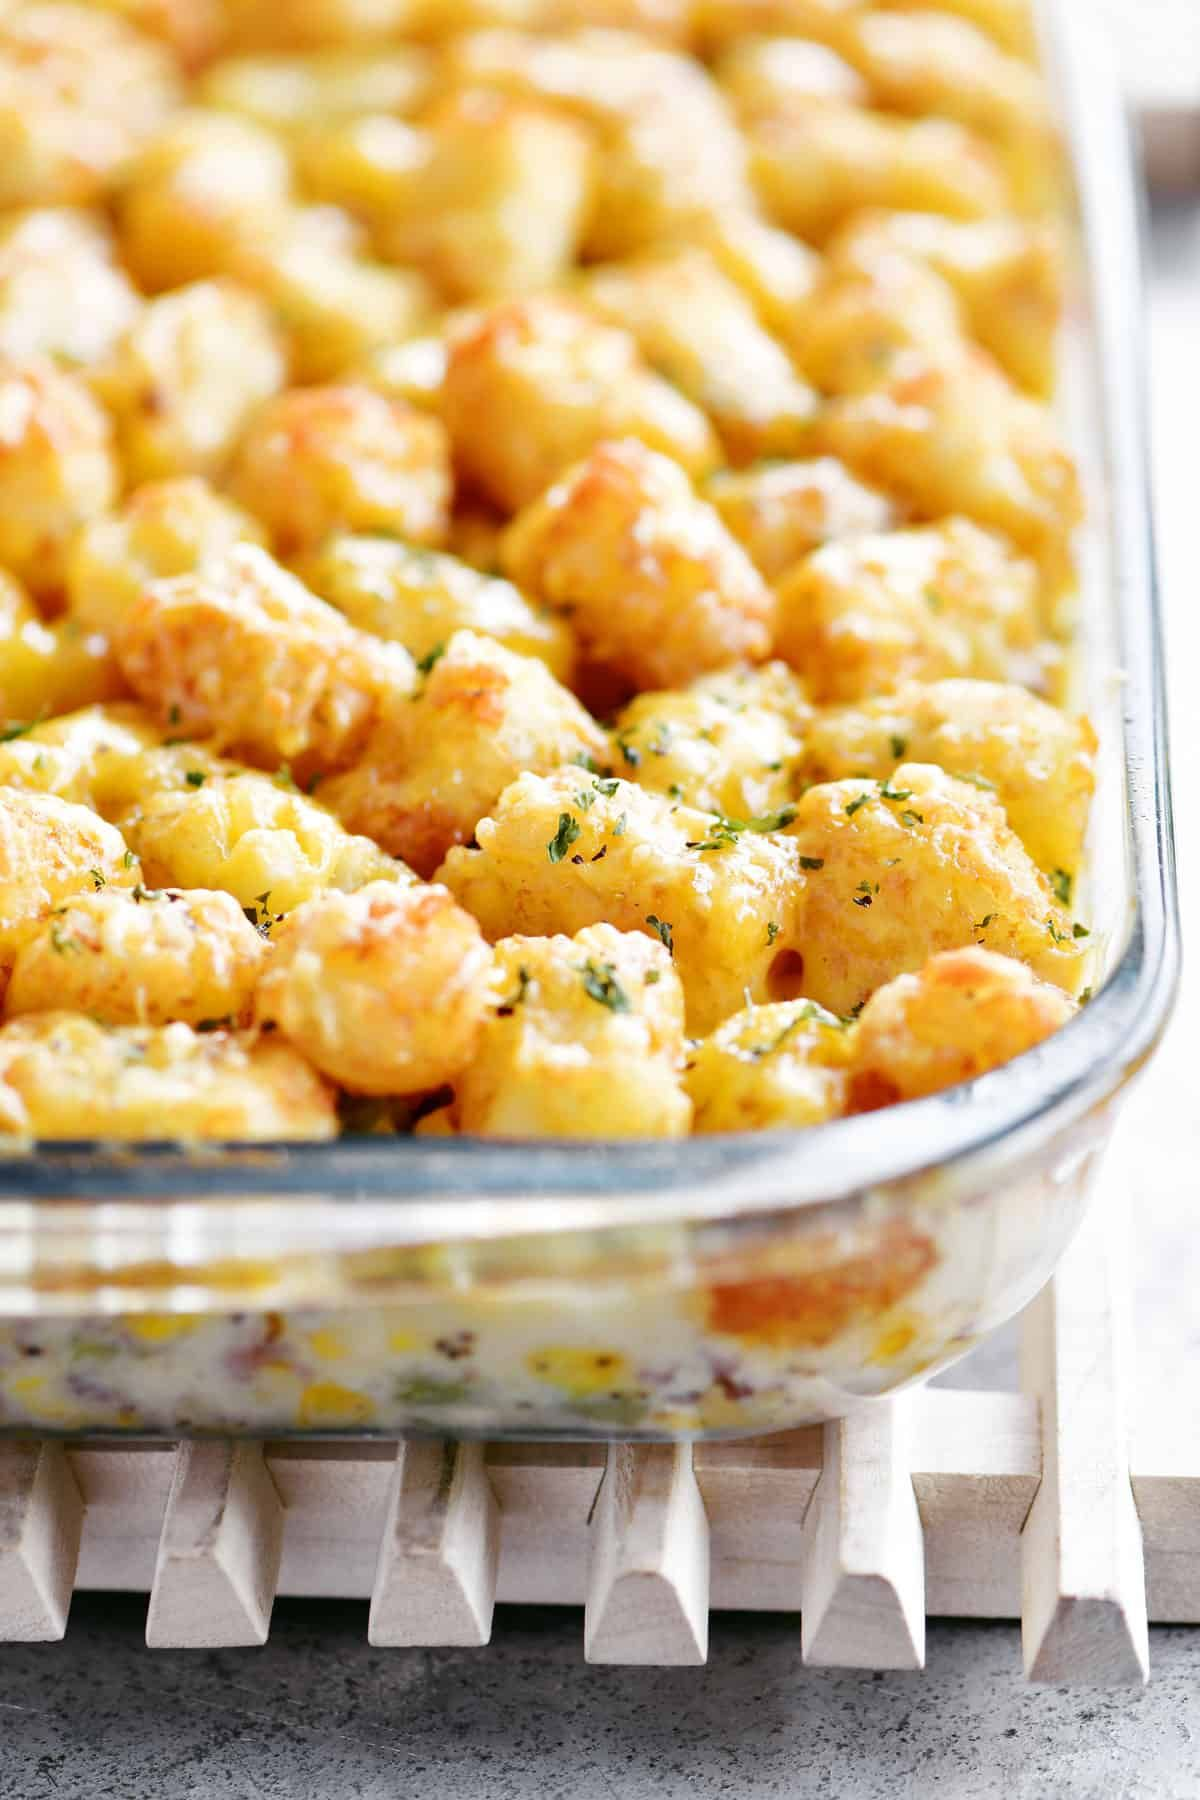 Tater Tot Casserole Has A Creamy Layer Of Ground Beef Italian Sausage Green Beans And Corn Toppe Tater Tot Casserole Ground Sausage Recipes Tater Tot Recipes